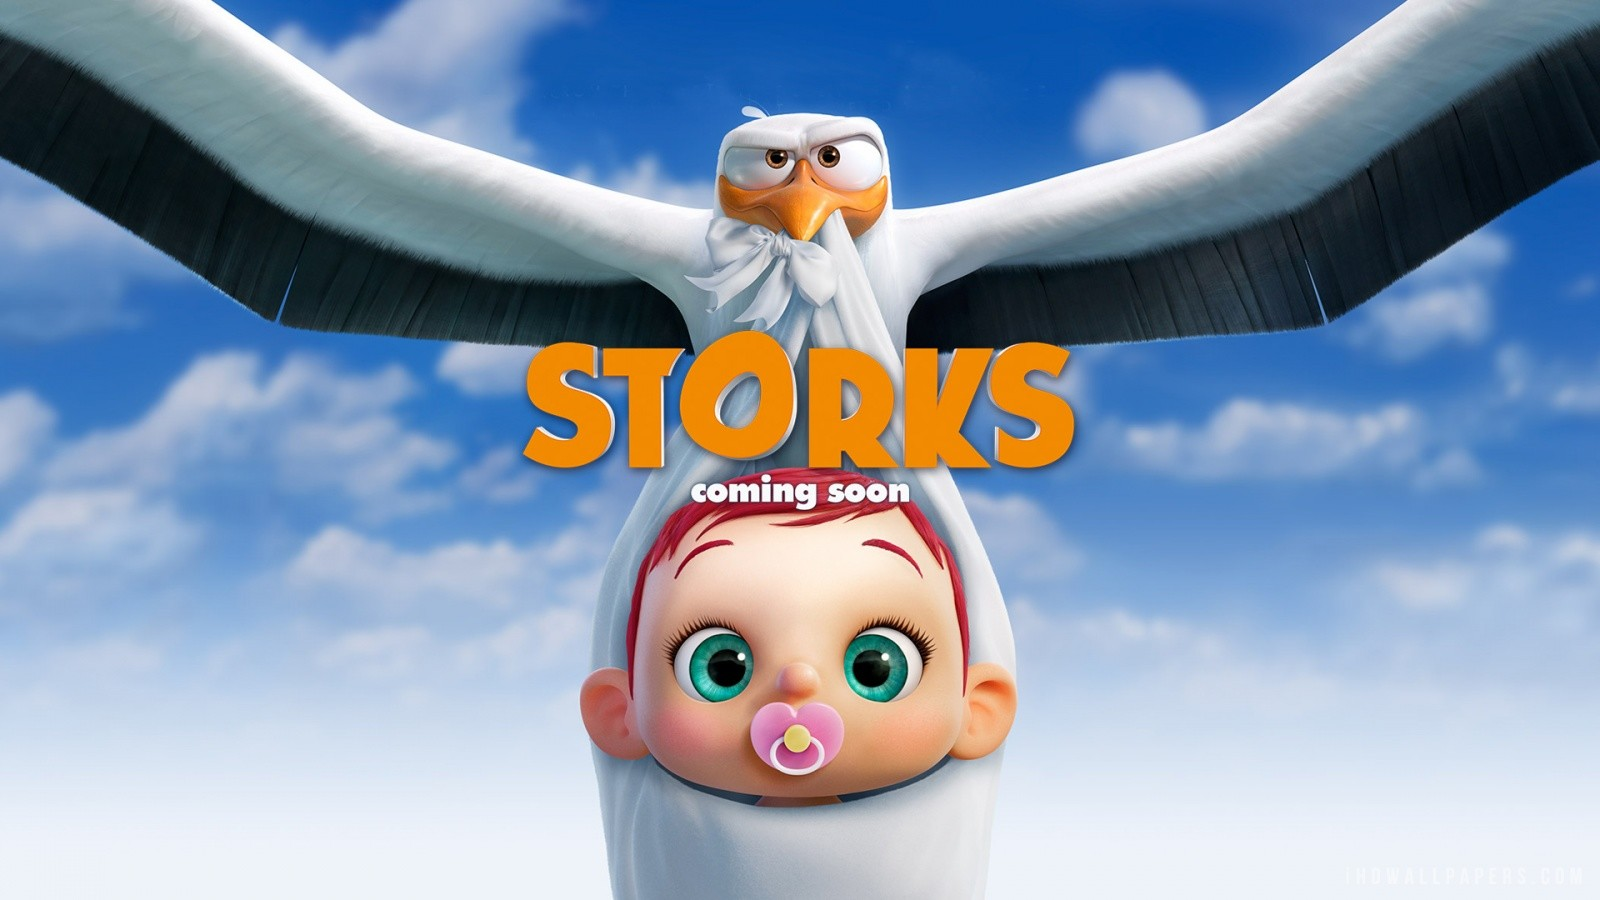 Promotional Image: Painted parts of the baby and her binky. Painted a lot of the stork's wing feathers (provided model didn't have much detail) and eye details.